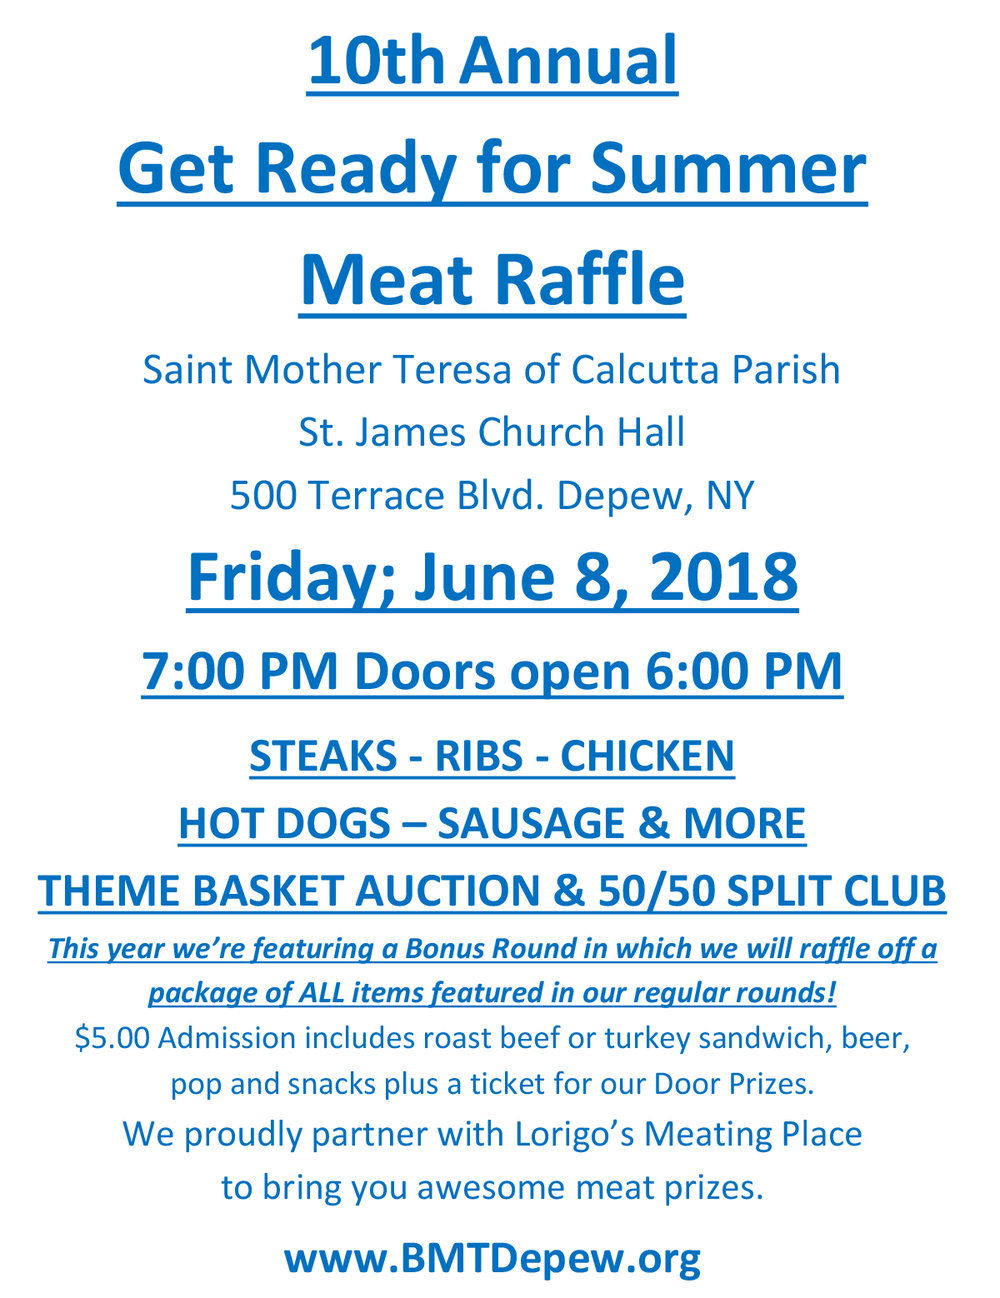 10th Annual Get Ready for Summer Meat Raffle for WNY Meat Raffles.jpg